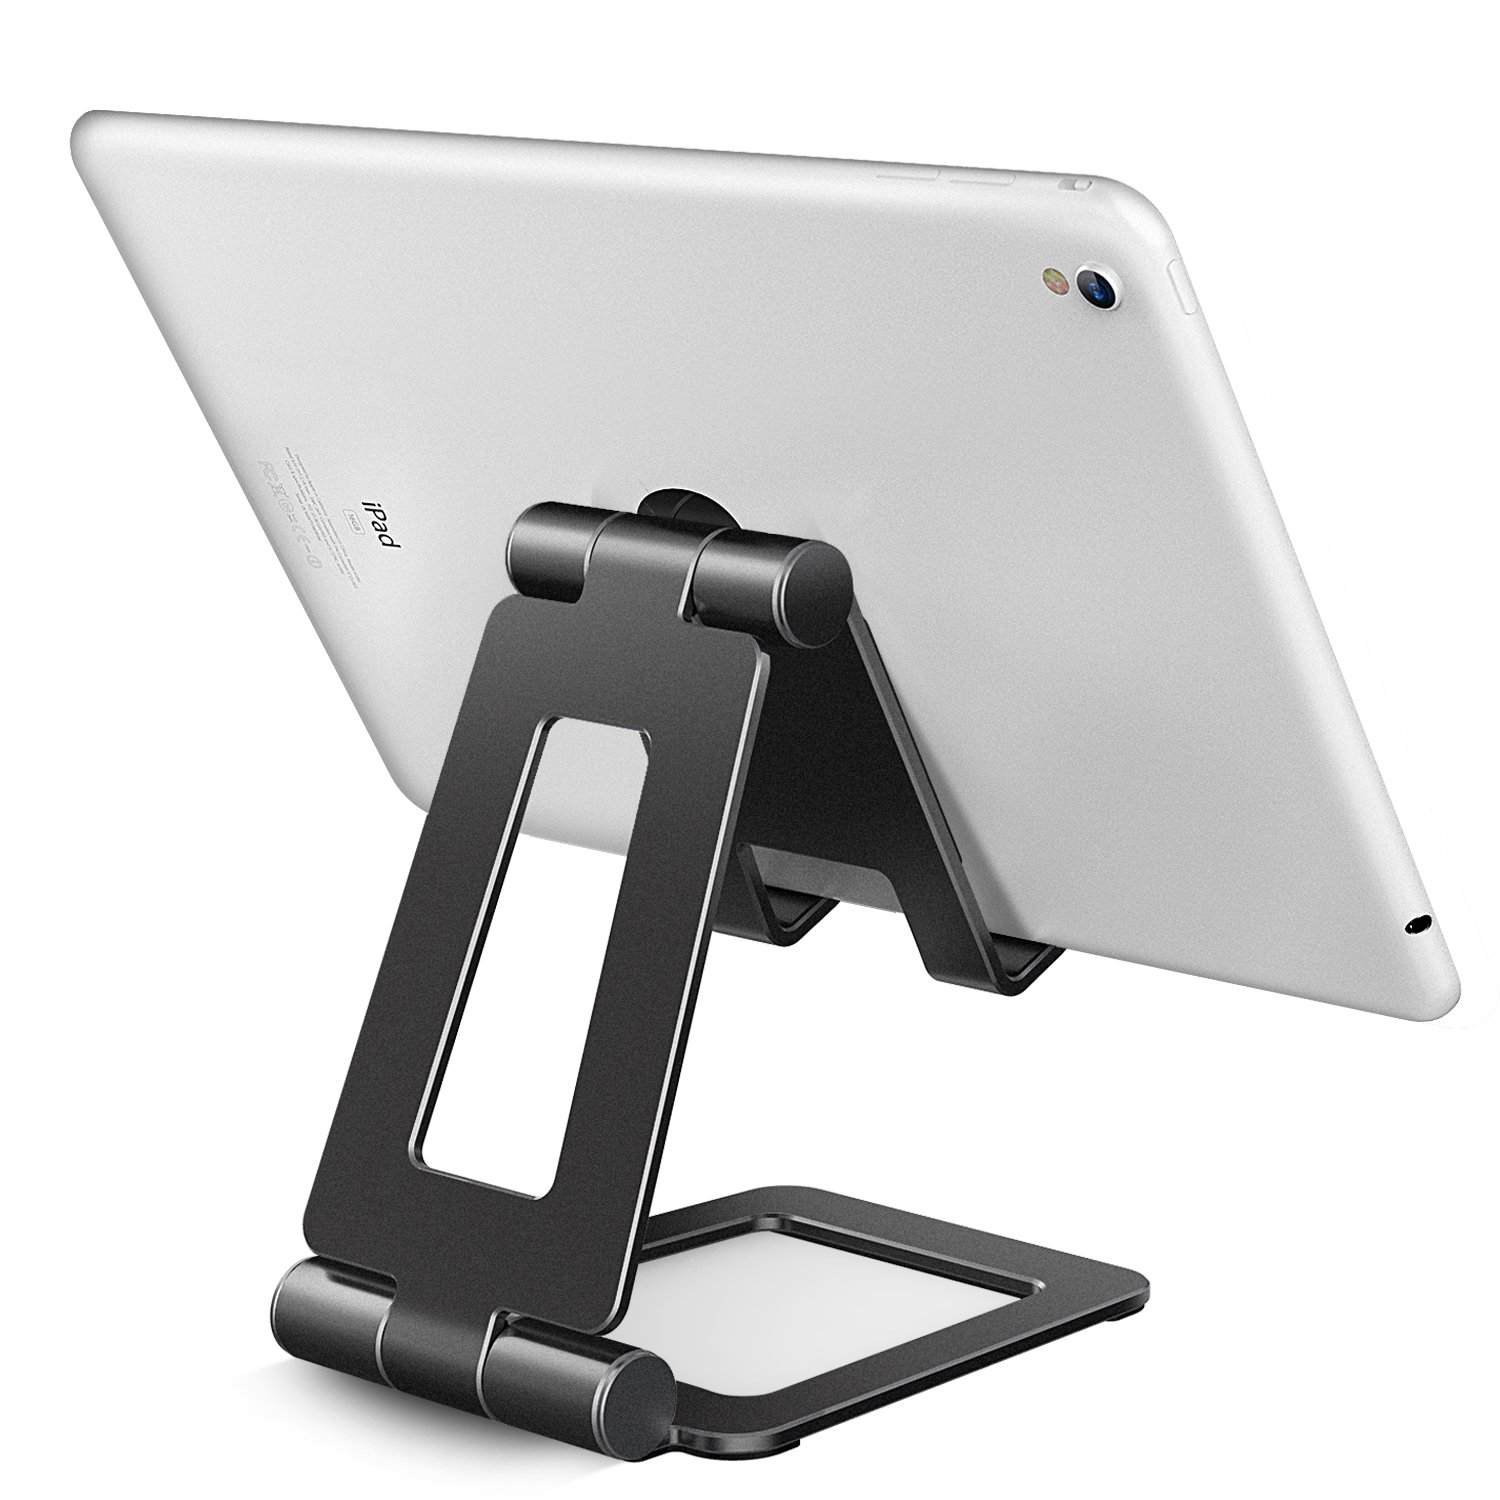 Adjustable iPad Stand, Tablet Stand Holders, Cell Phone Stands, iPhone Stand, Nintendo Switch Stand, iPad Pro Stand, iPad Mini Stands and Holders for Desk (4-10 inch) by Hi-Tech Wireless